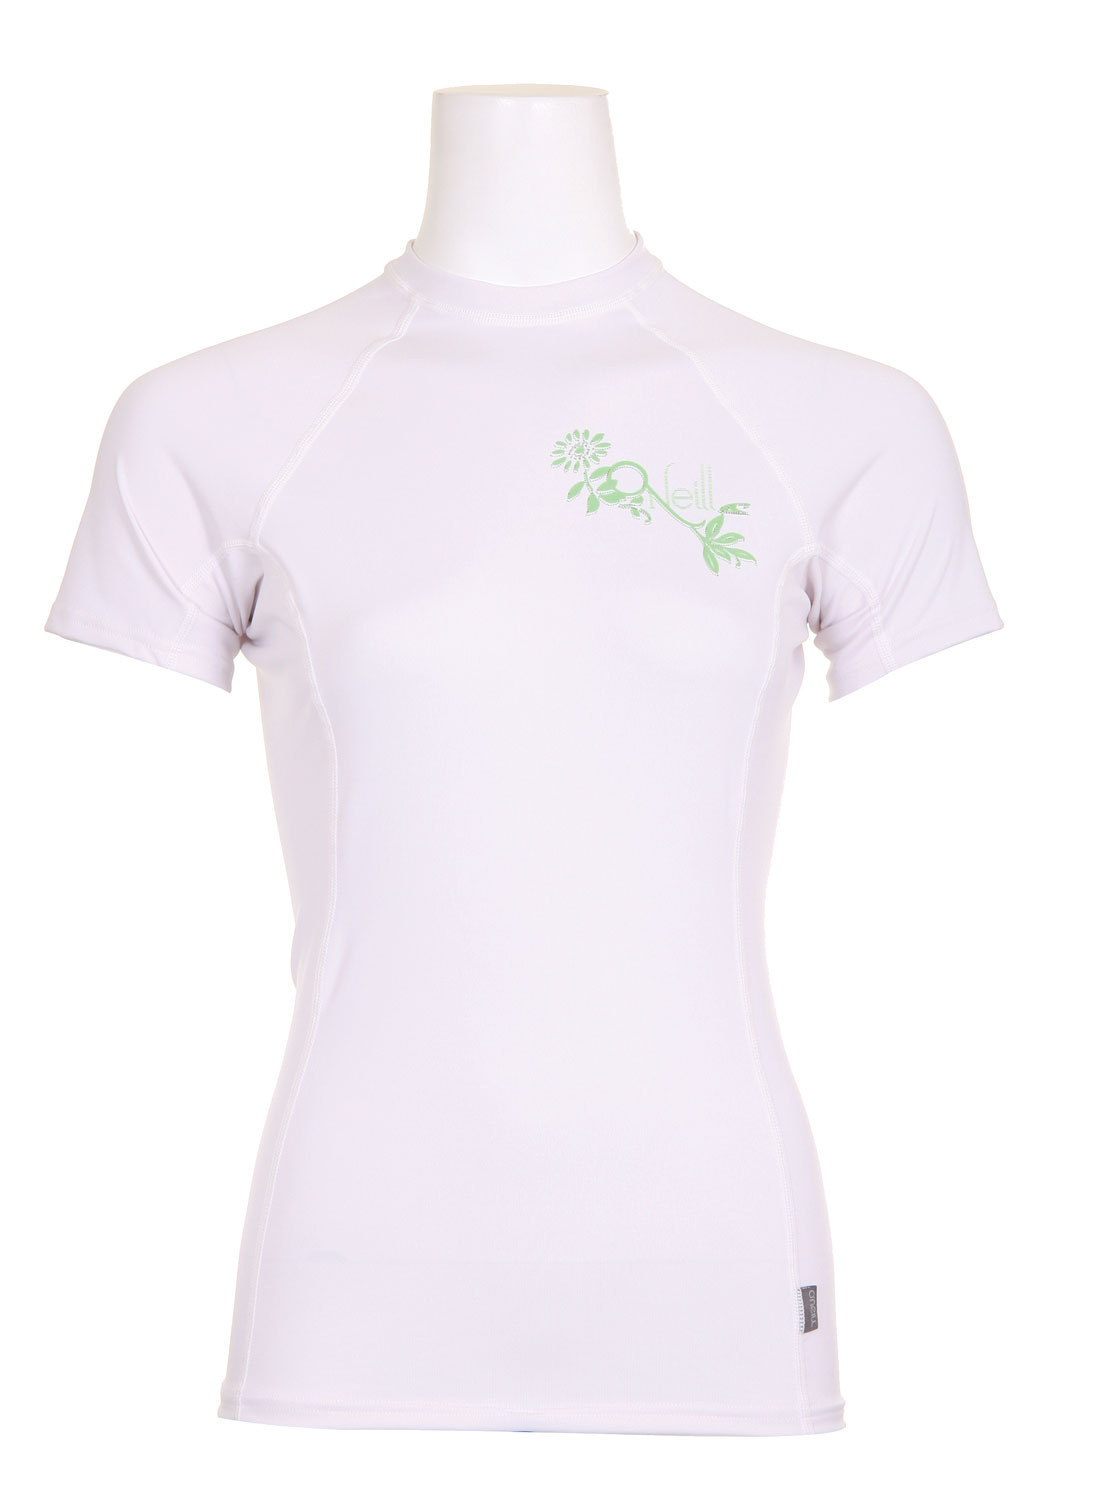 Surf RG8 means all products in this series are built from 90% recycled bottles and plastics and printed with water-based inks. The RG8 line features the same UV and rash protection as O'Neill's traditionally constructed lycra pieces.Key Features of the O'Neill Skins RG8 Women's Rashguard: Rash protection RG8 - Constructed 90% of recycled bottles and plastic U.P.F 50+ Seamless Paddle Zones - $24.95